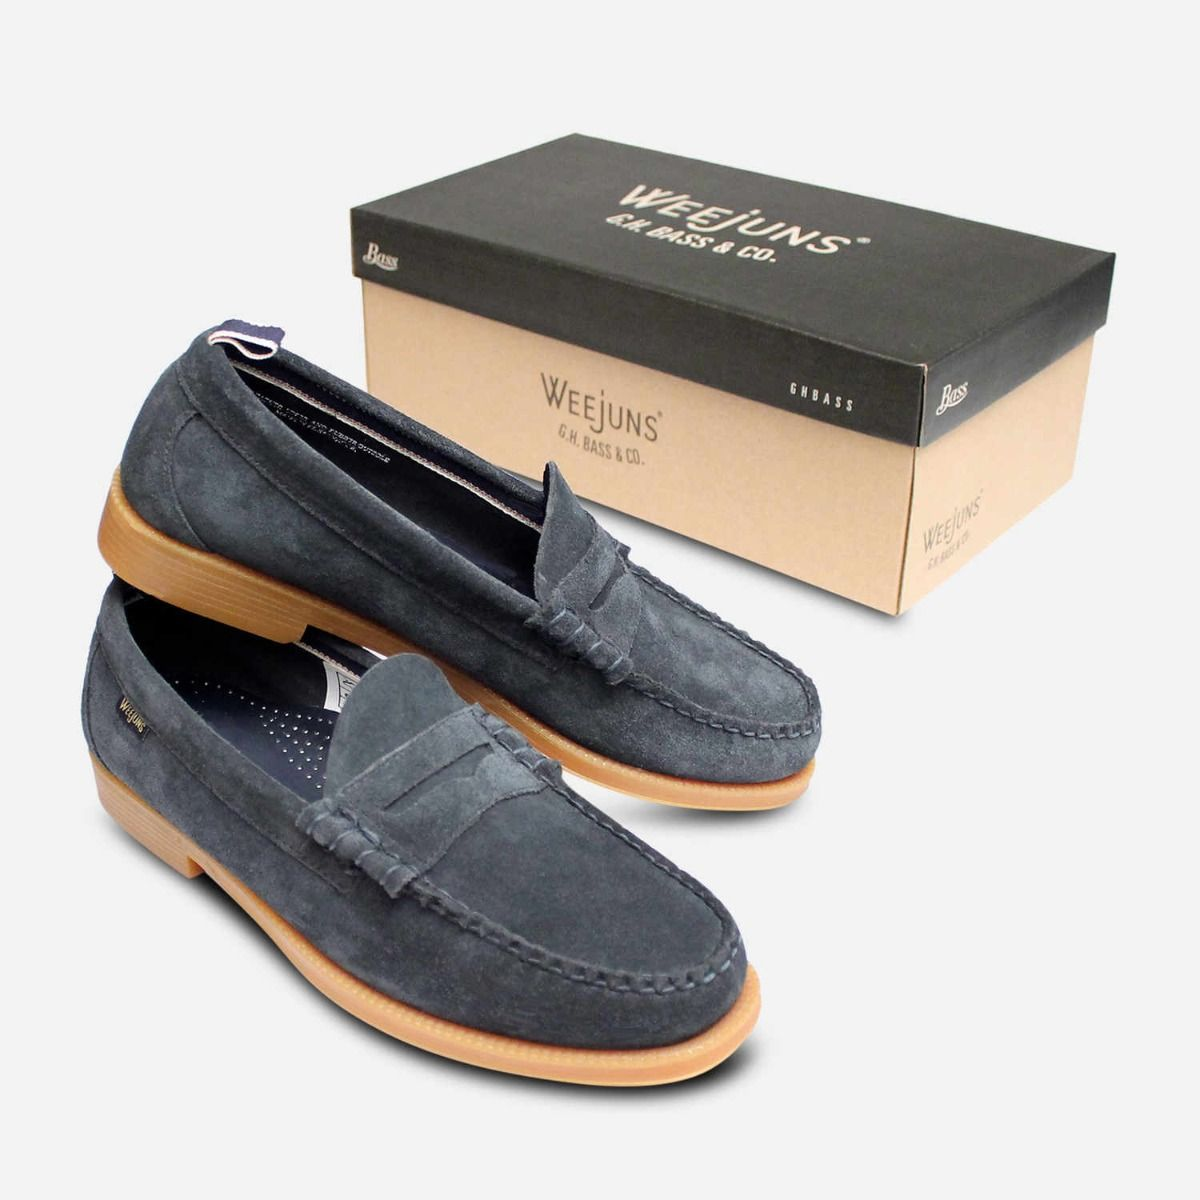 Bass Weejuns Jeans Blue Suede Leather